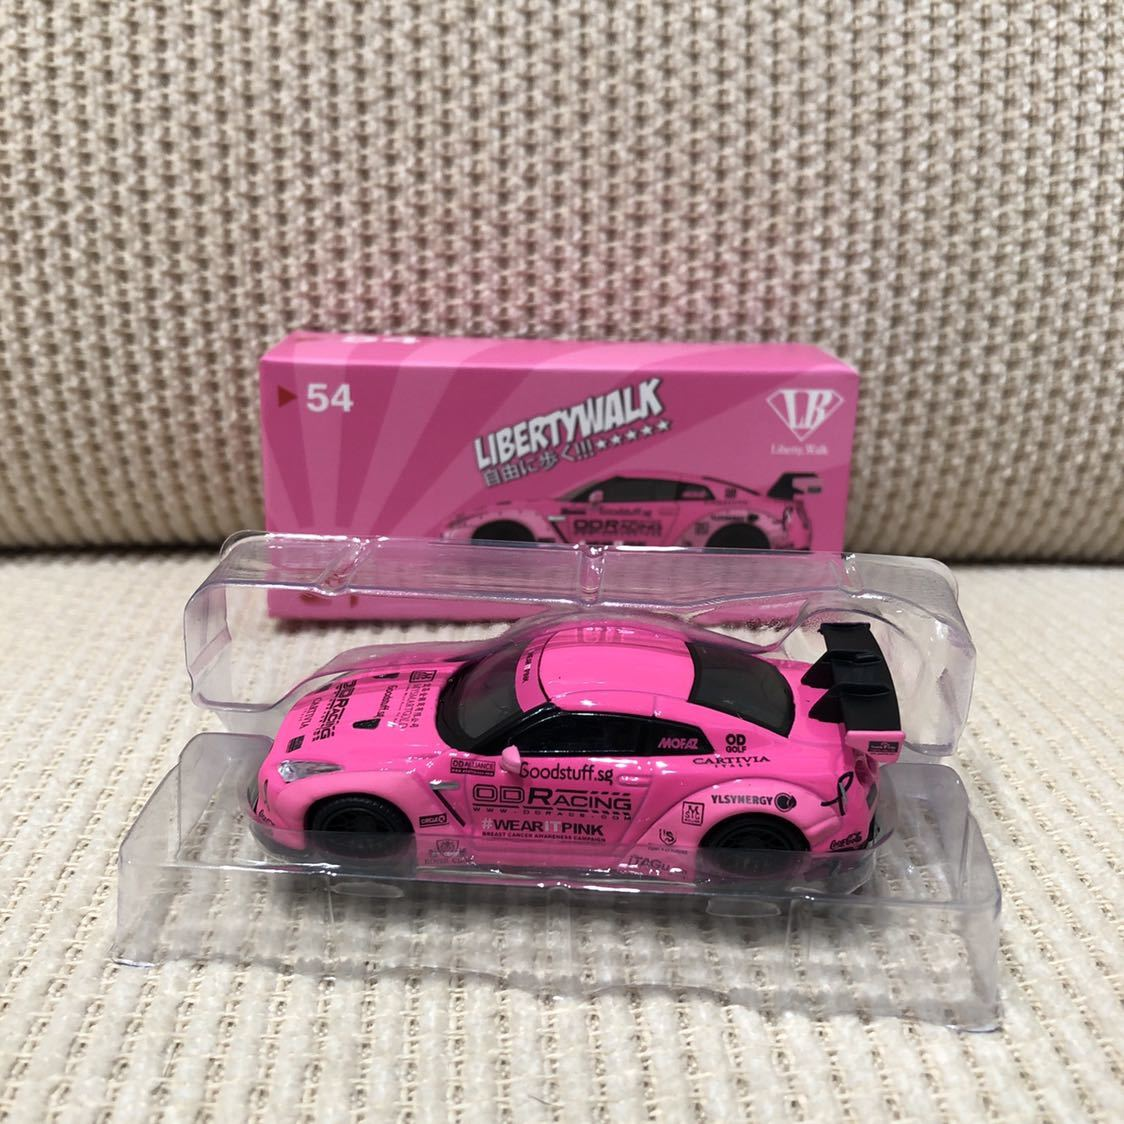 TSM MINI GT 1/64 リバティーウォーク ニッサン GT-R R35 Type1 Rear wing Ver.1 LB WORKS 限定 レア ピンク Pink MGT00054 マレーシア限定